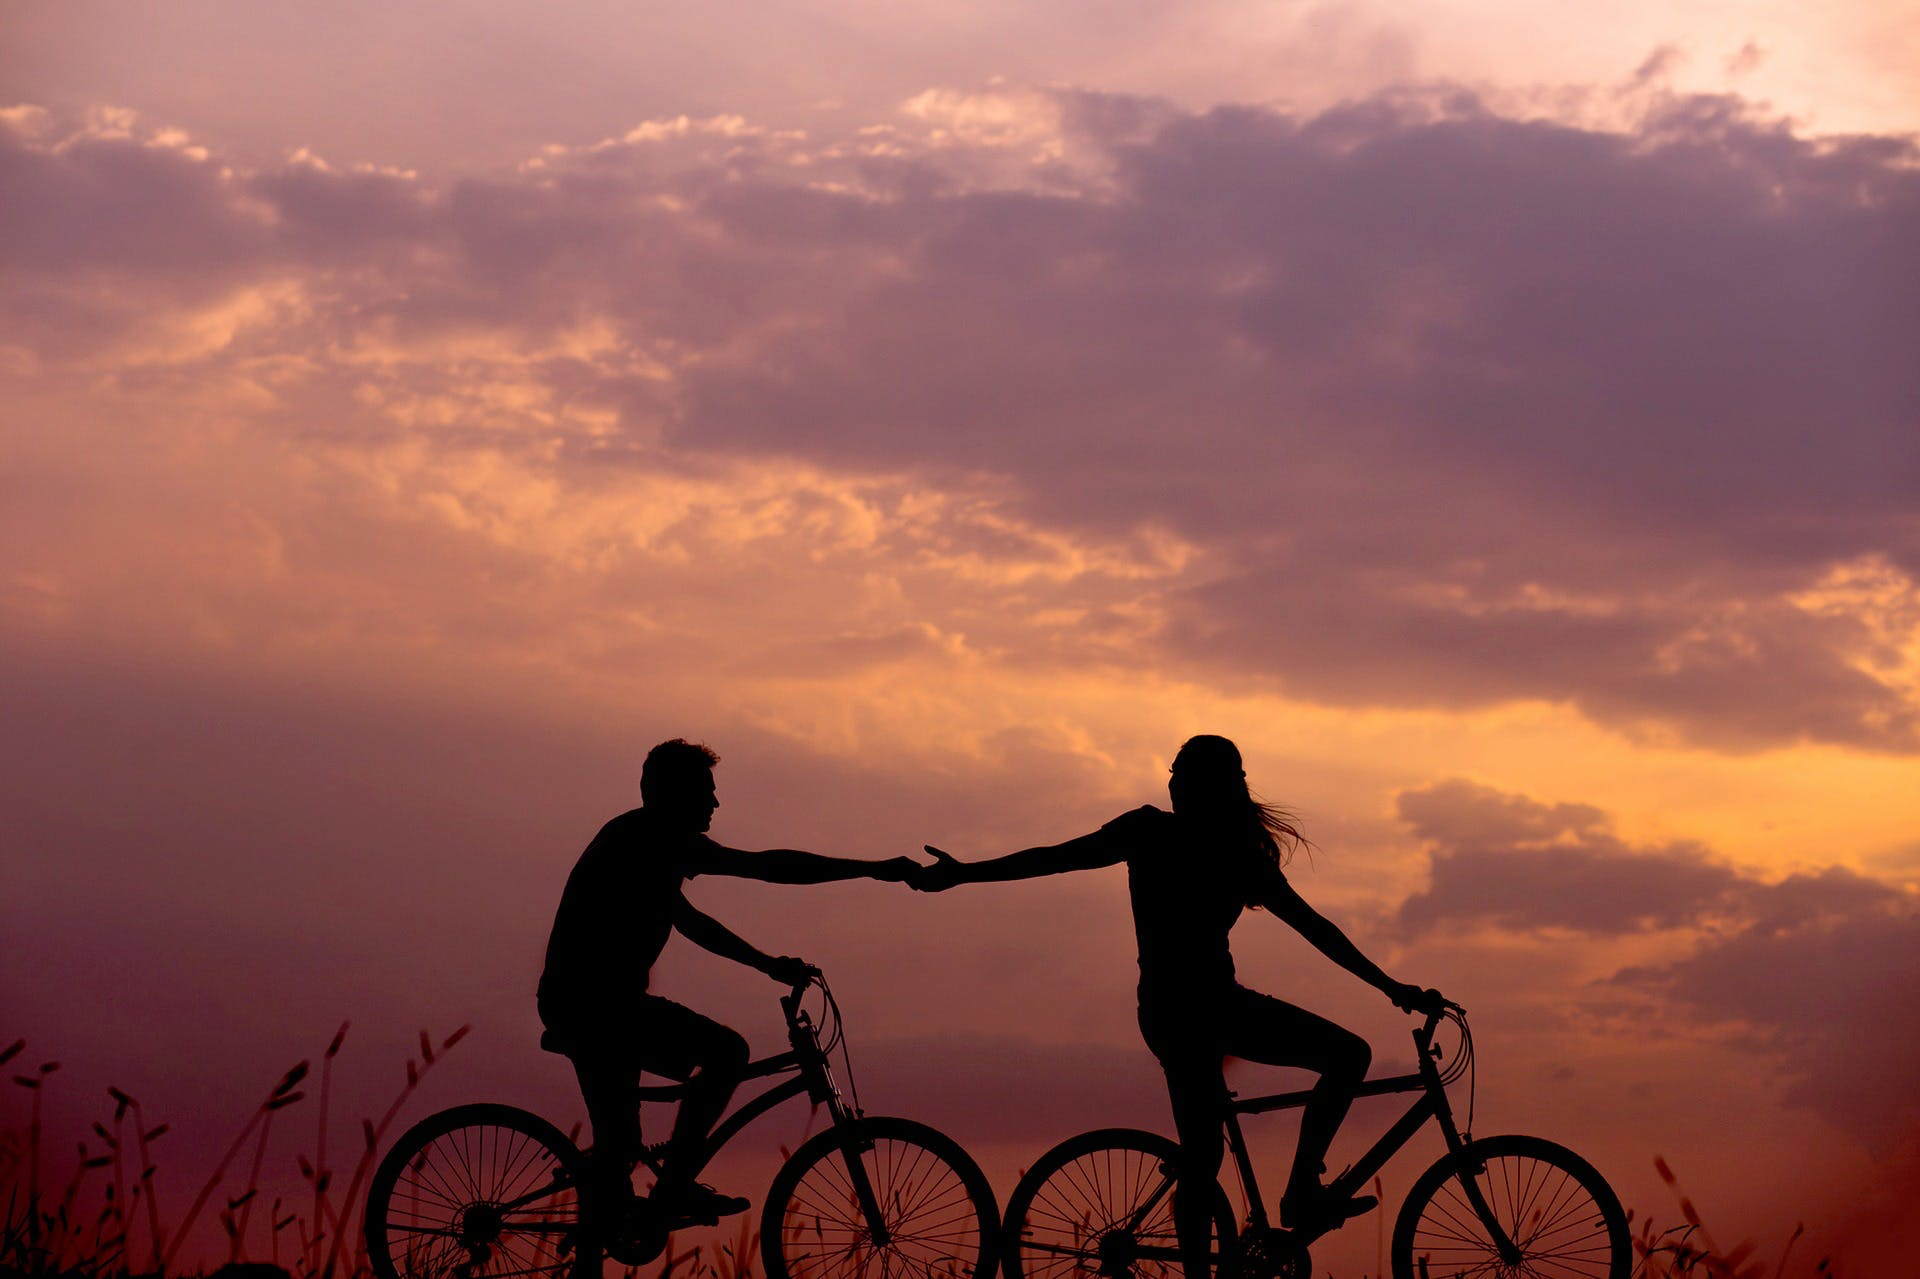 Two cyclists holding hands at sunset